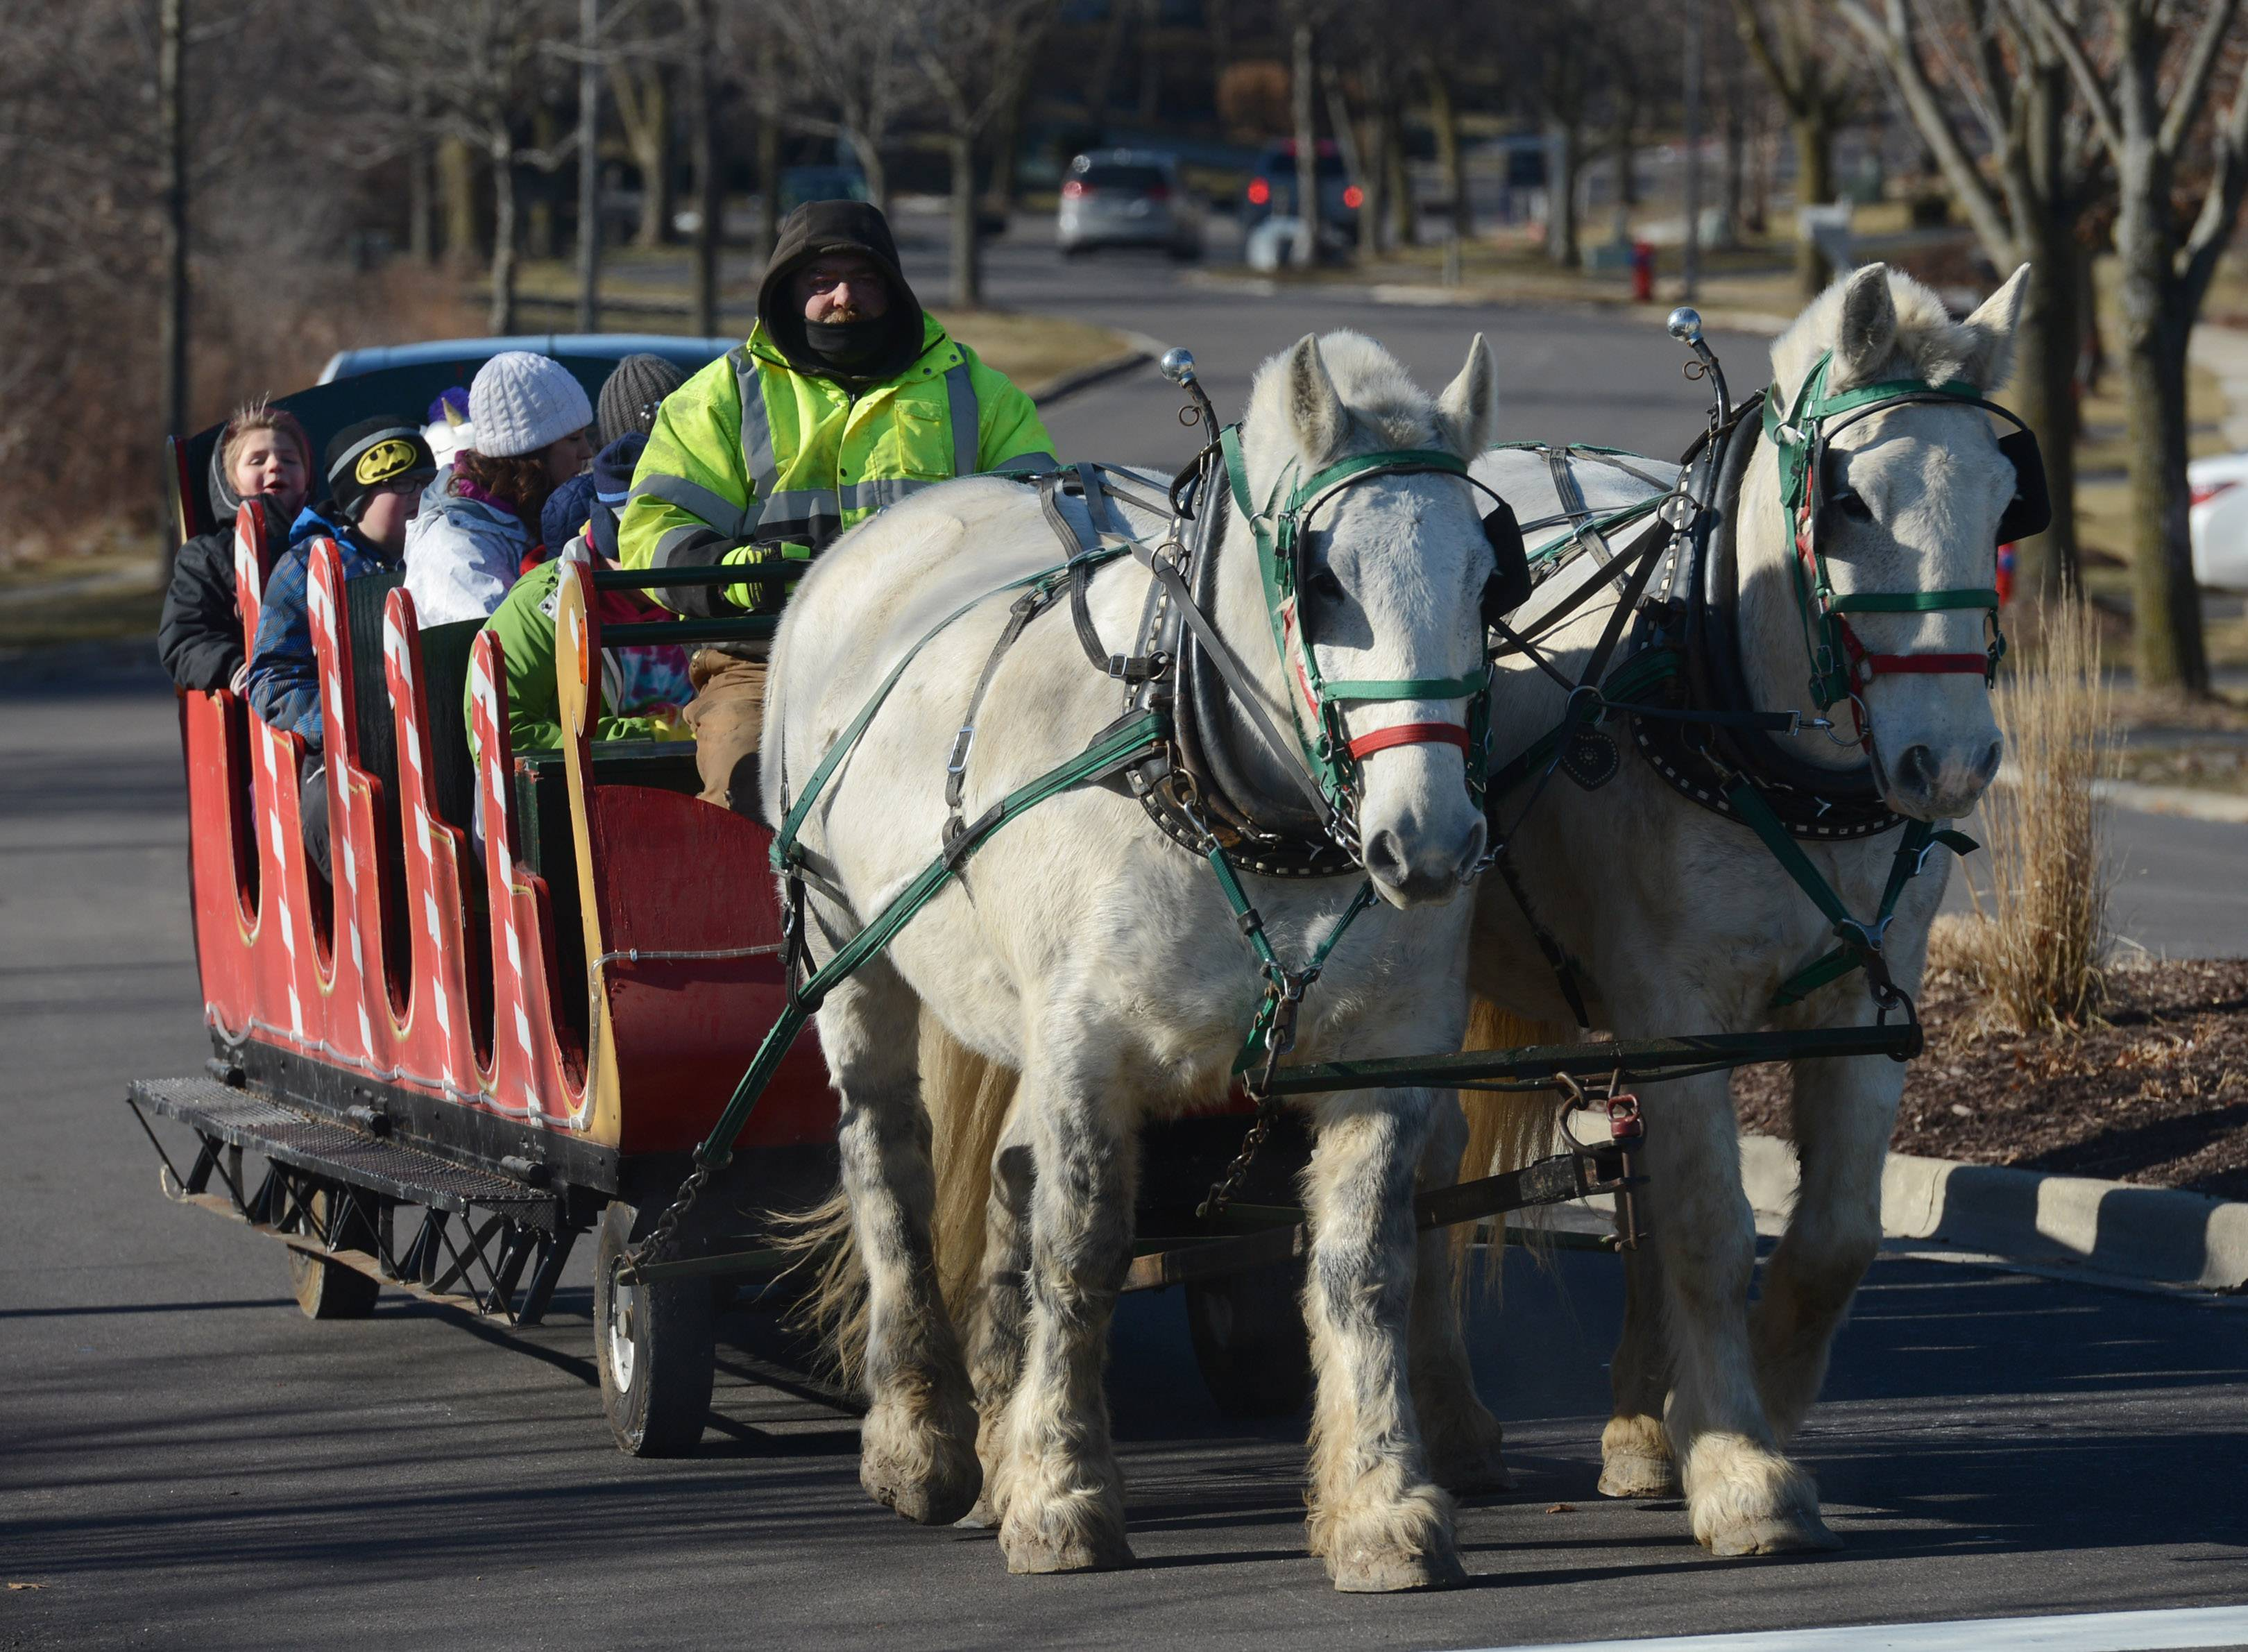 Horses pull a sleigh during Frosty Fest at Bittersweet Golf Club in Gurnee Saturday.